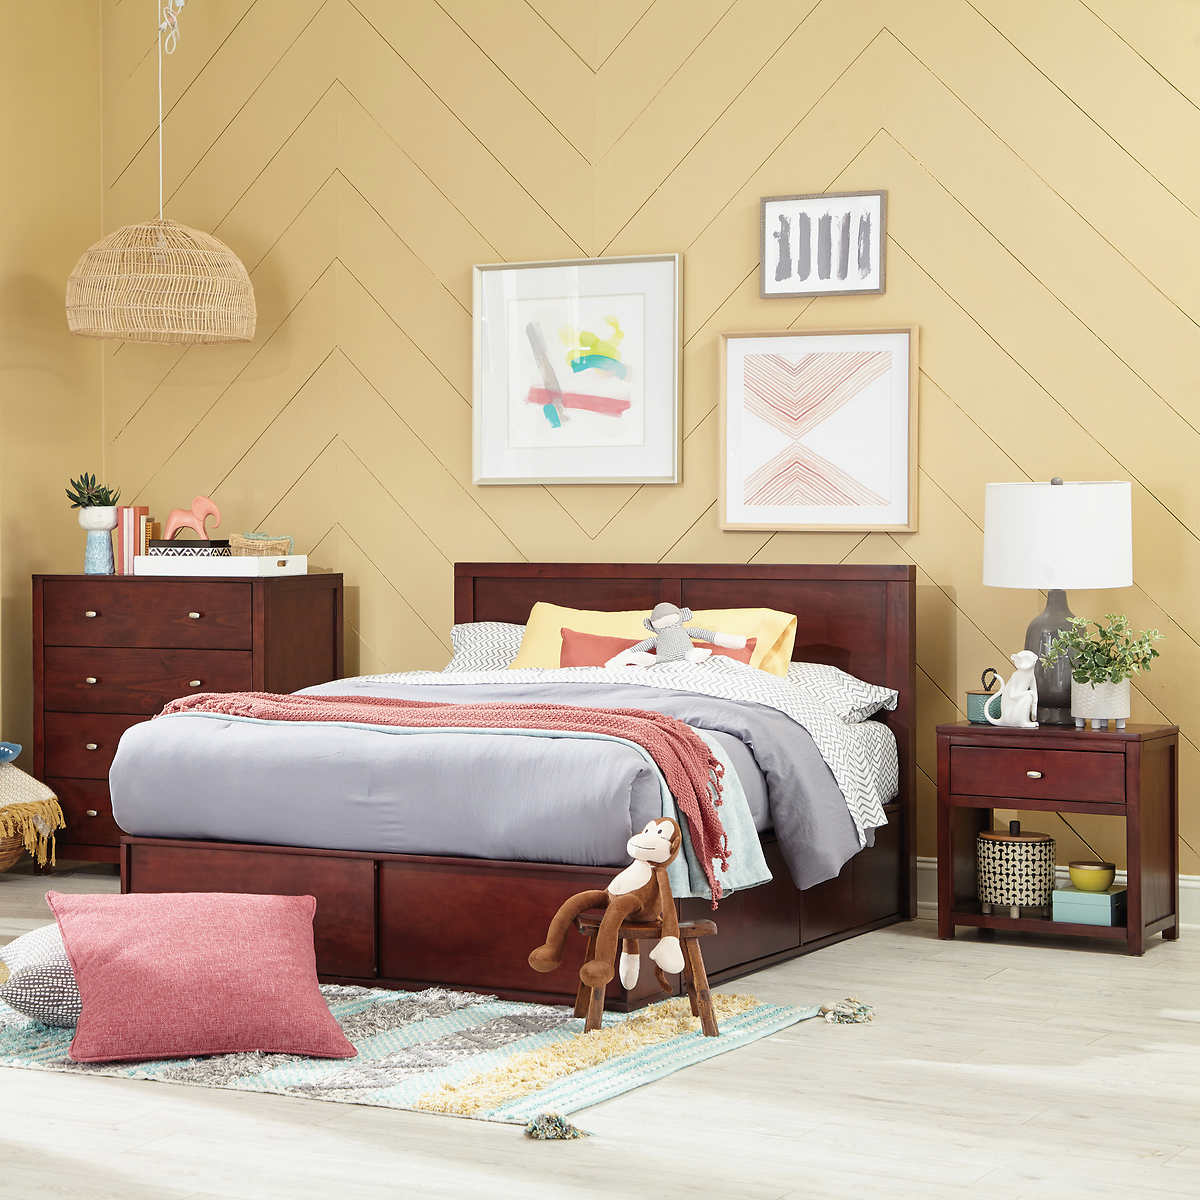 Bedroom Sets With Storage Beds full bedroom sets | costco